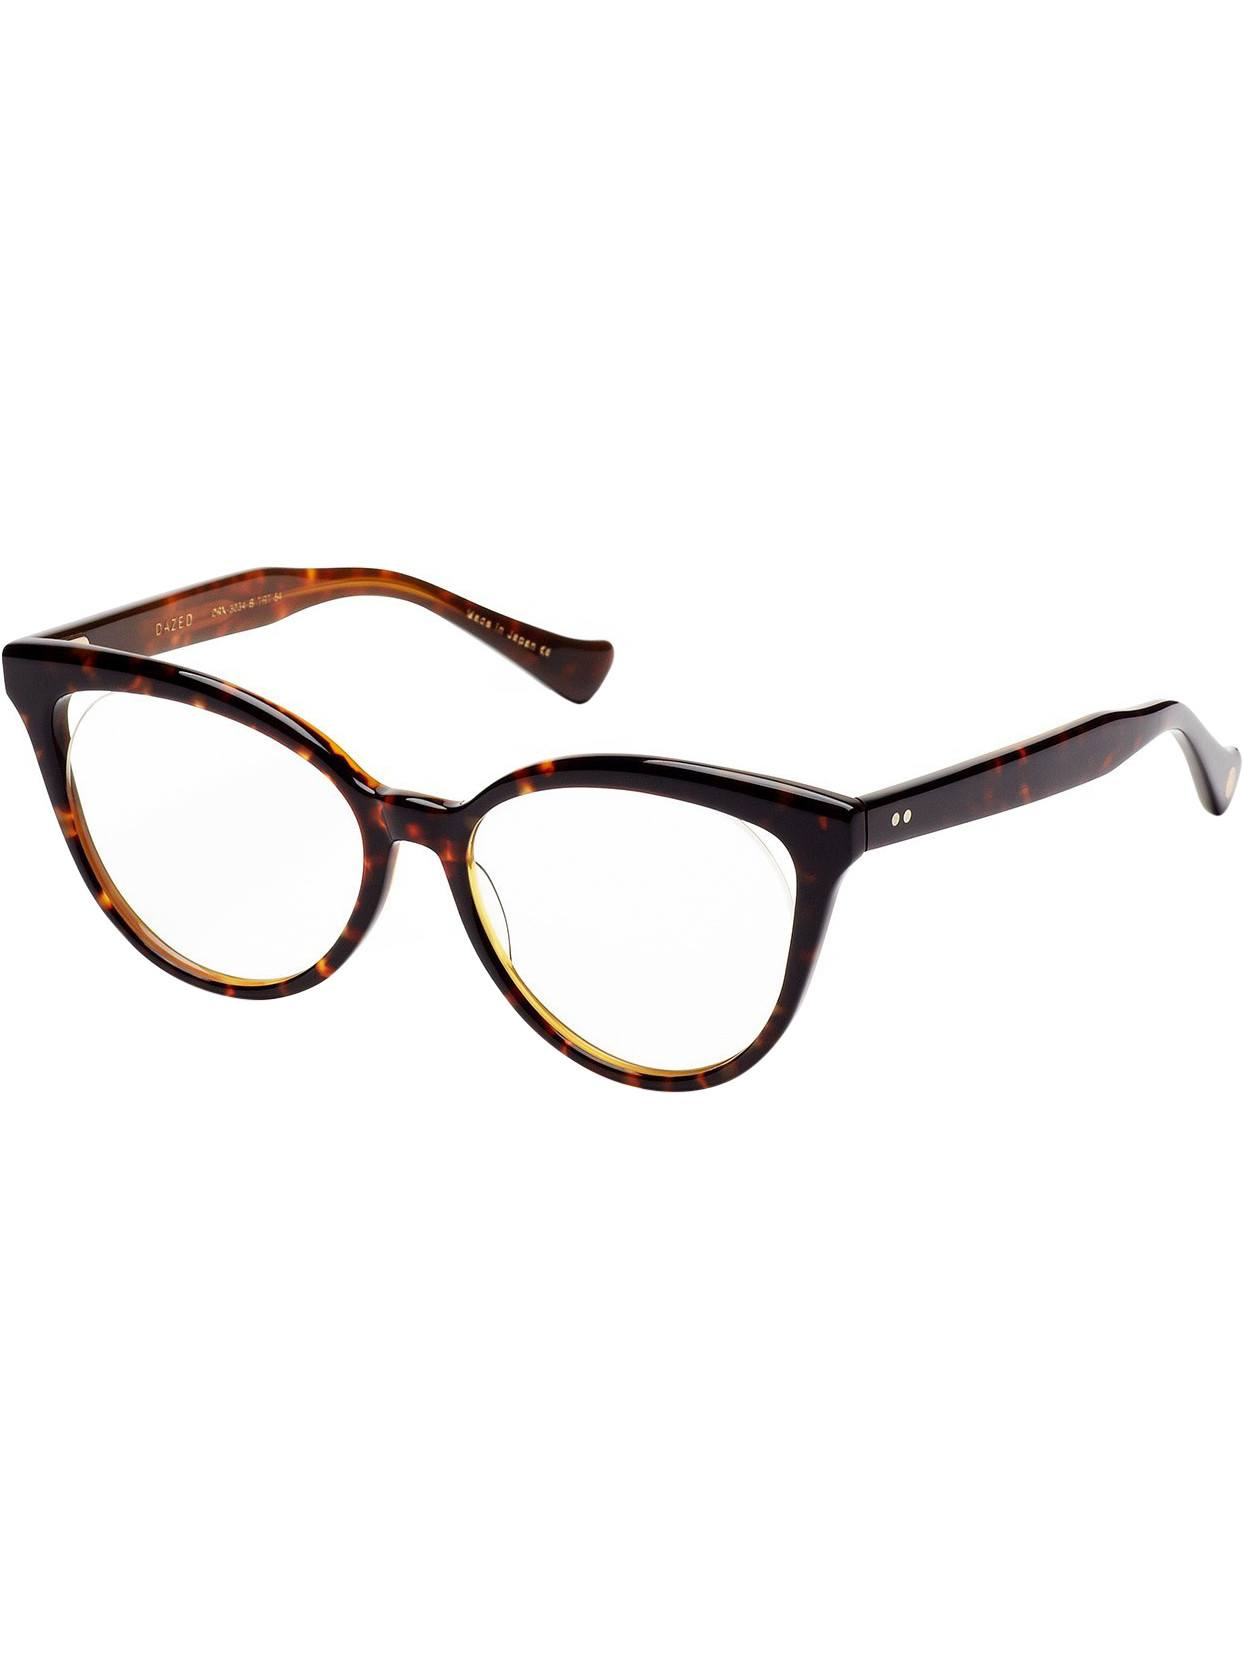 52386121865 Optical Frame - Dita Dazed-DRX-3034-B Glasses